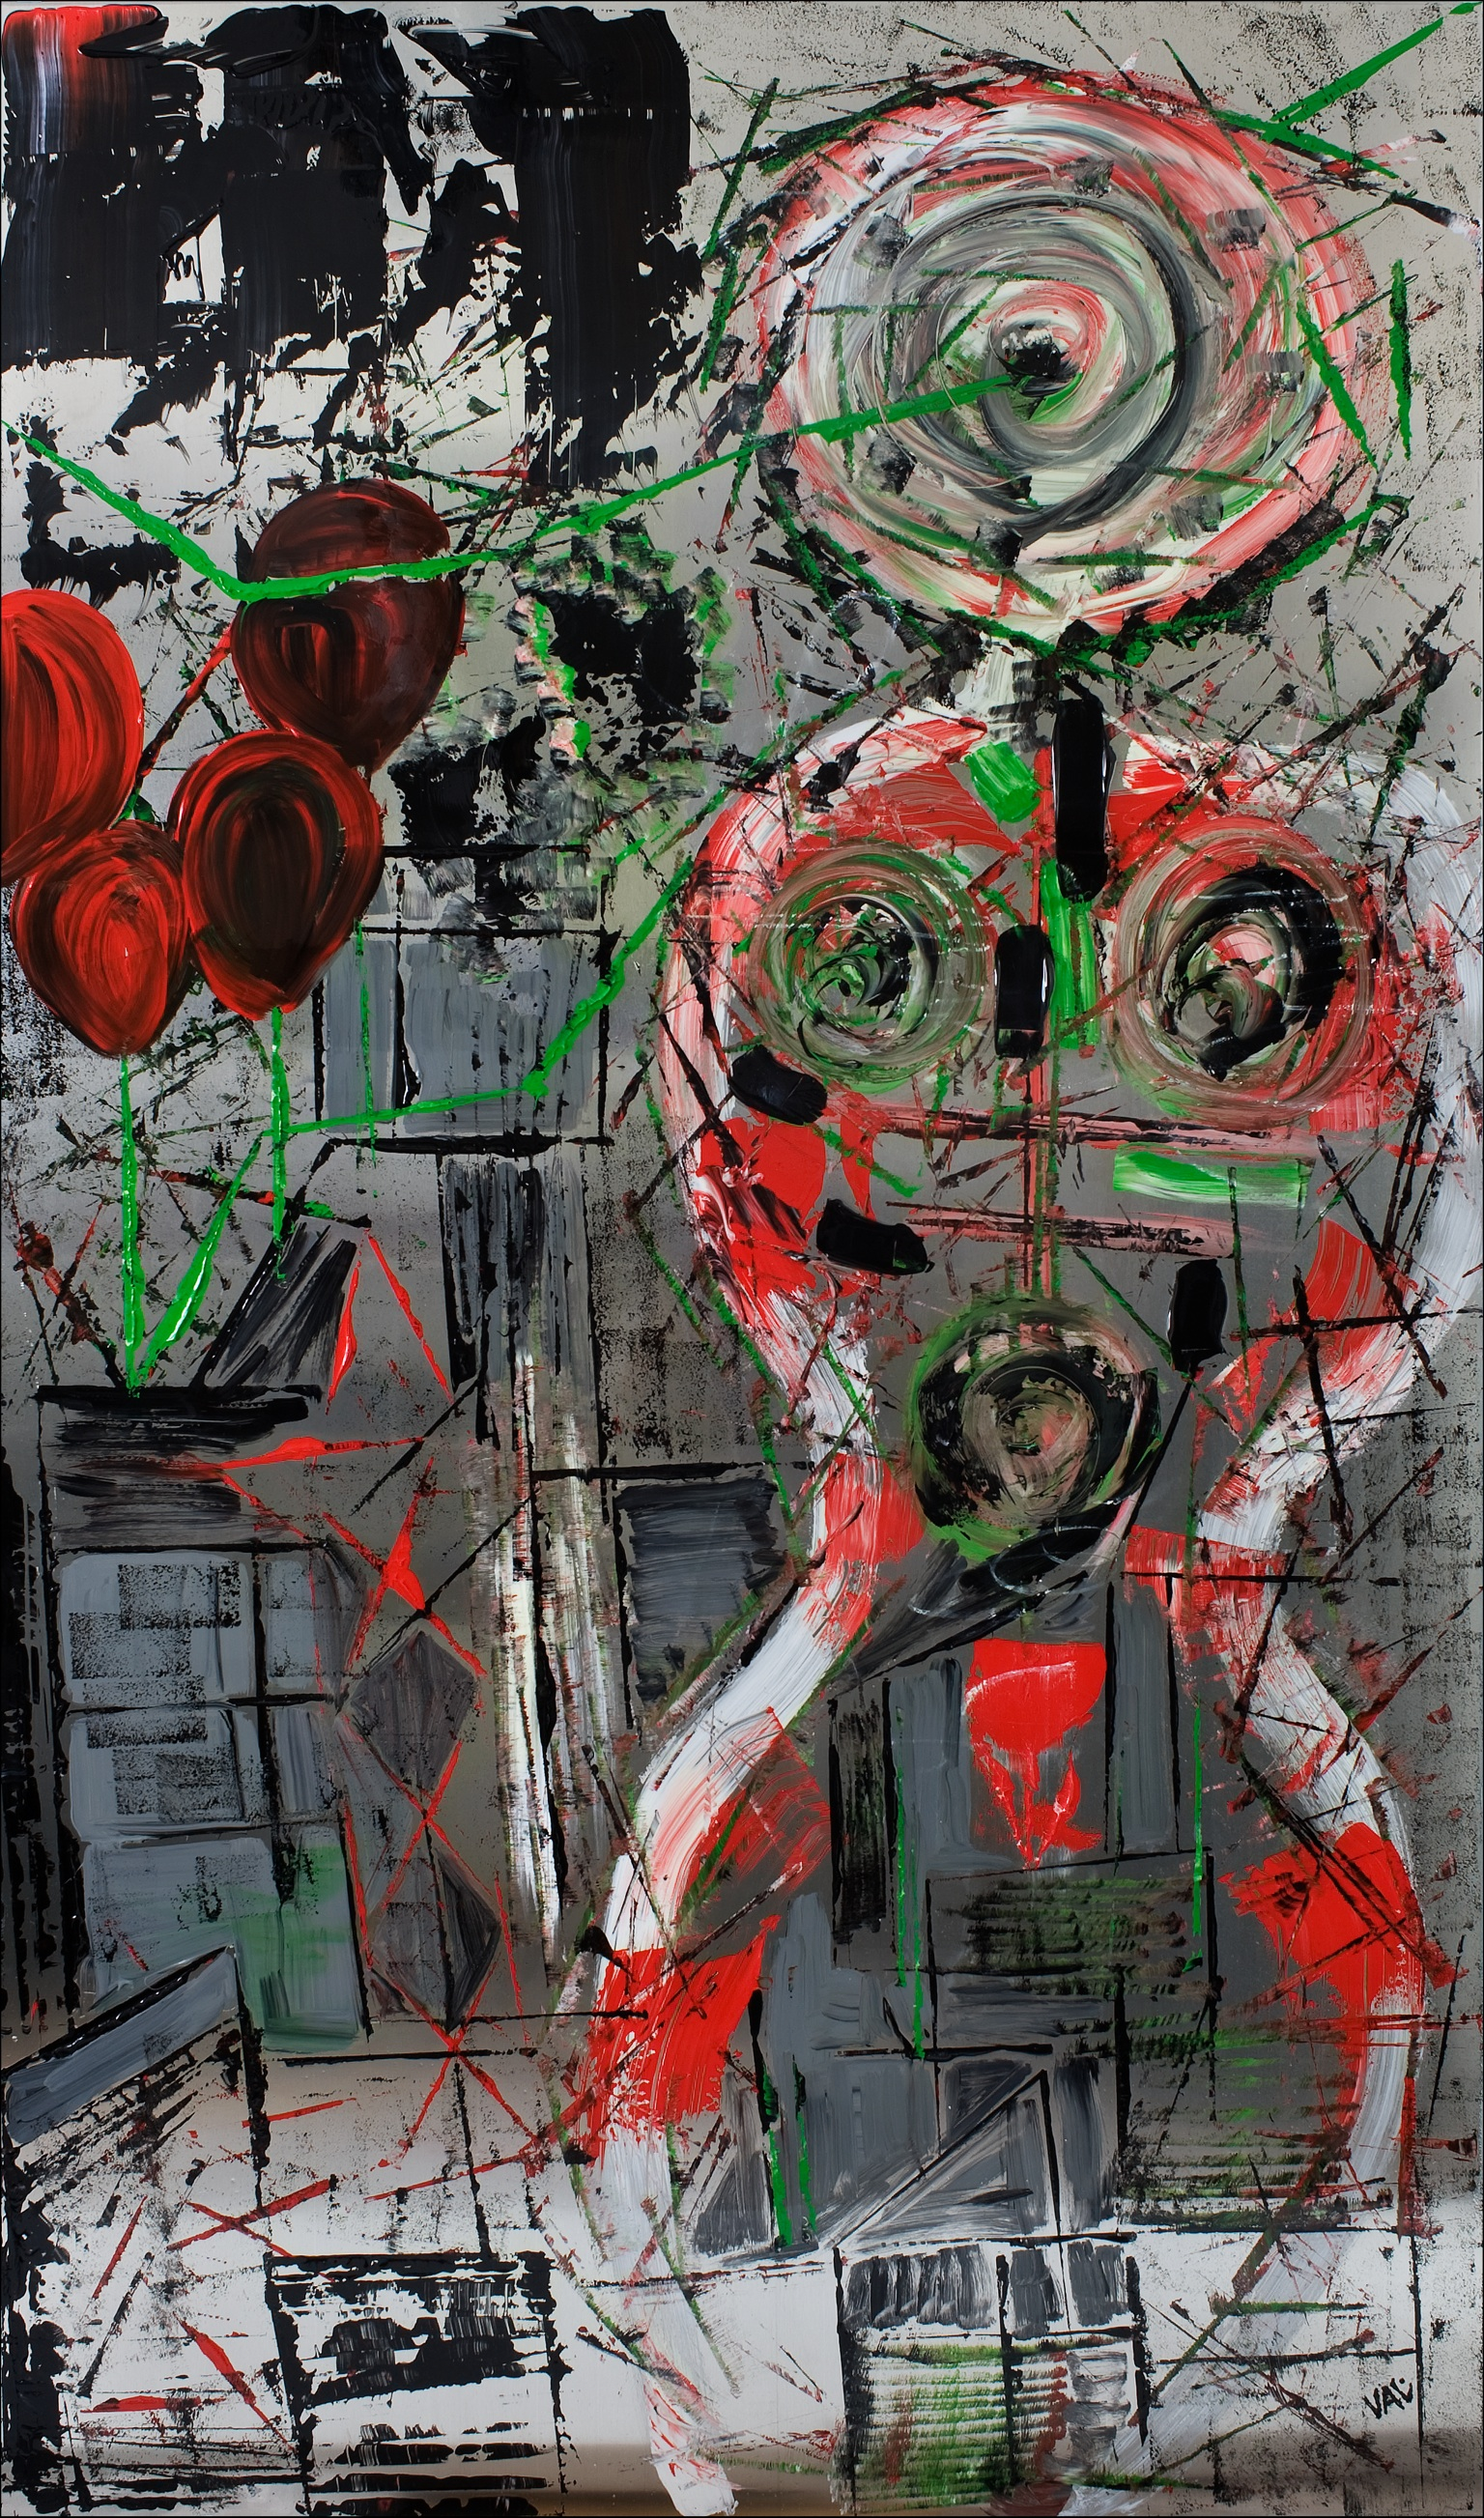 Les Ballons Rouges - 2013Acrylic and resin on aluminum240 x 140 cm